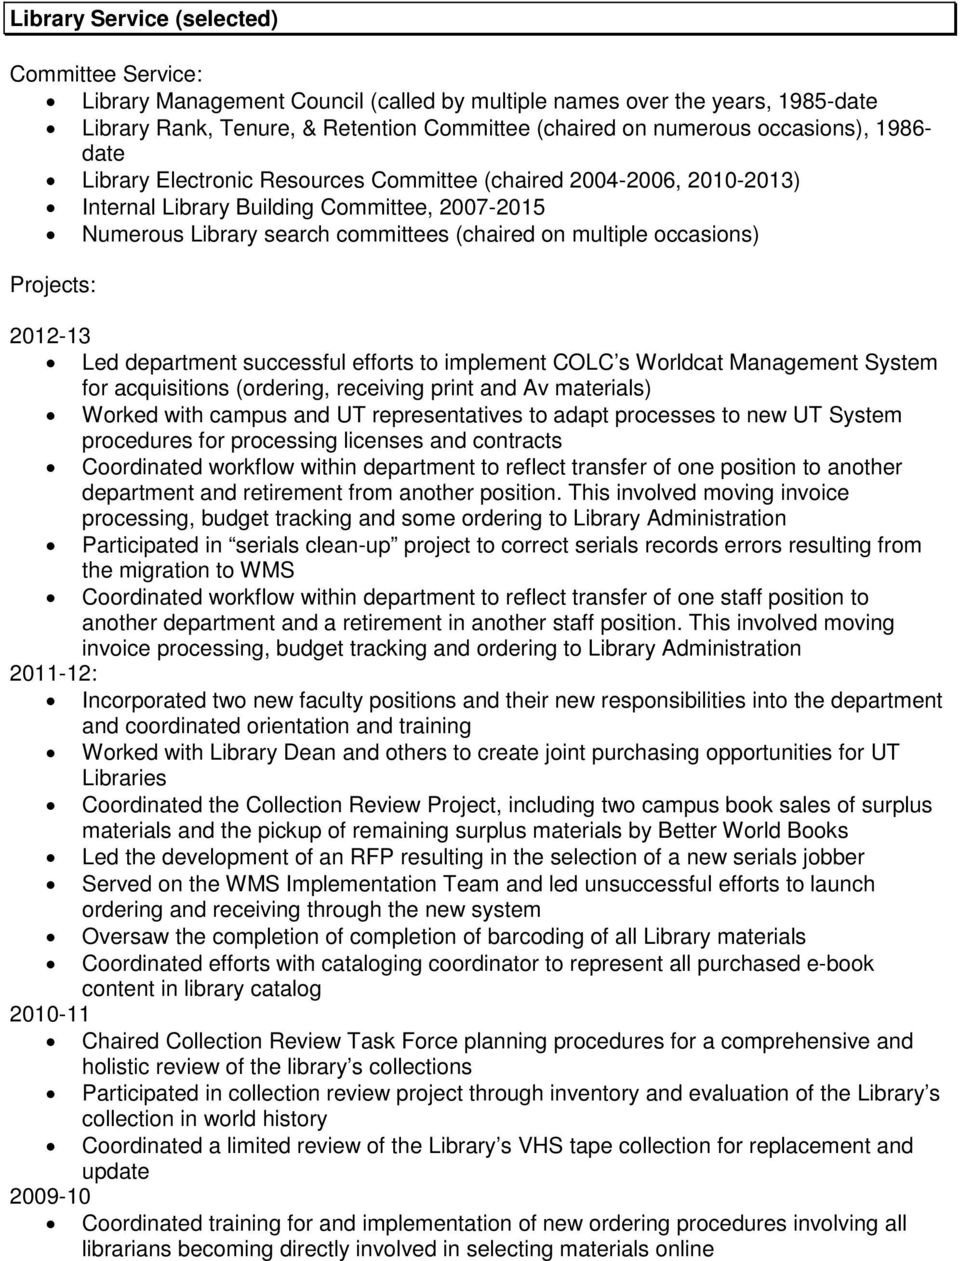 occasions) Projects: 2012-13 Led department successful efforts to implement COLC s Worldcat Management System for acquisitions (ordering, receiving print and Av materials) Worked with campus and UT